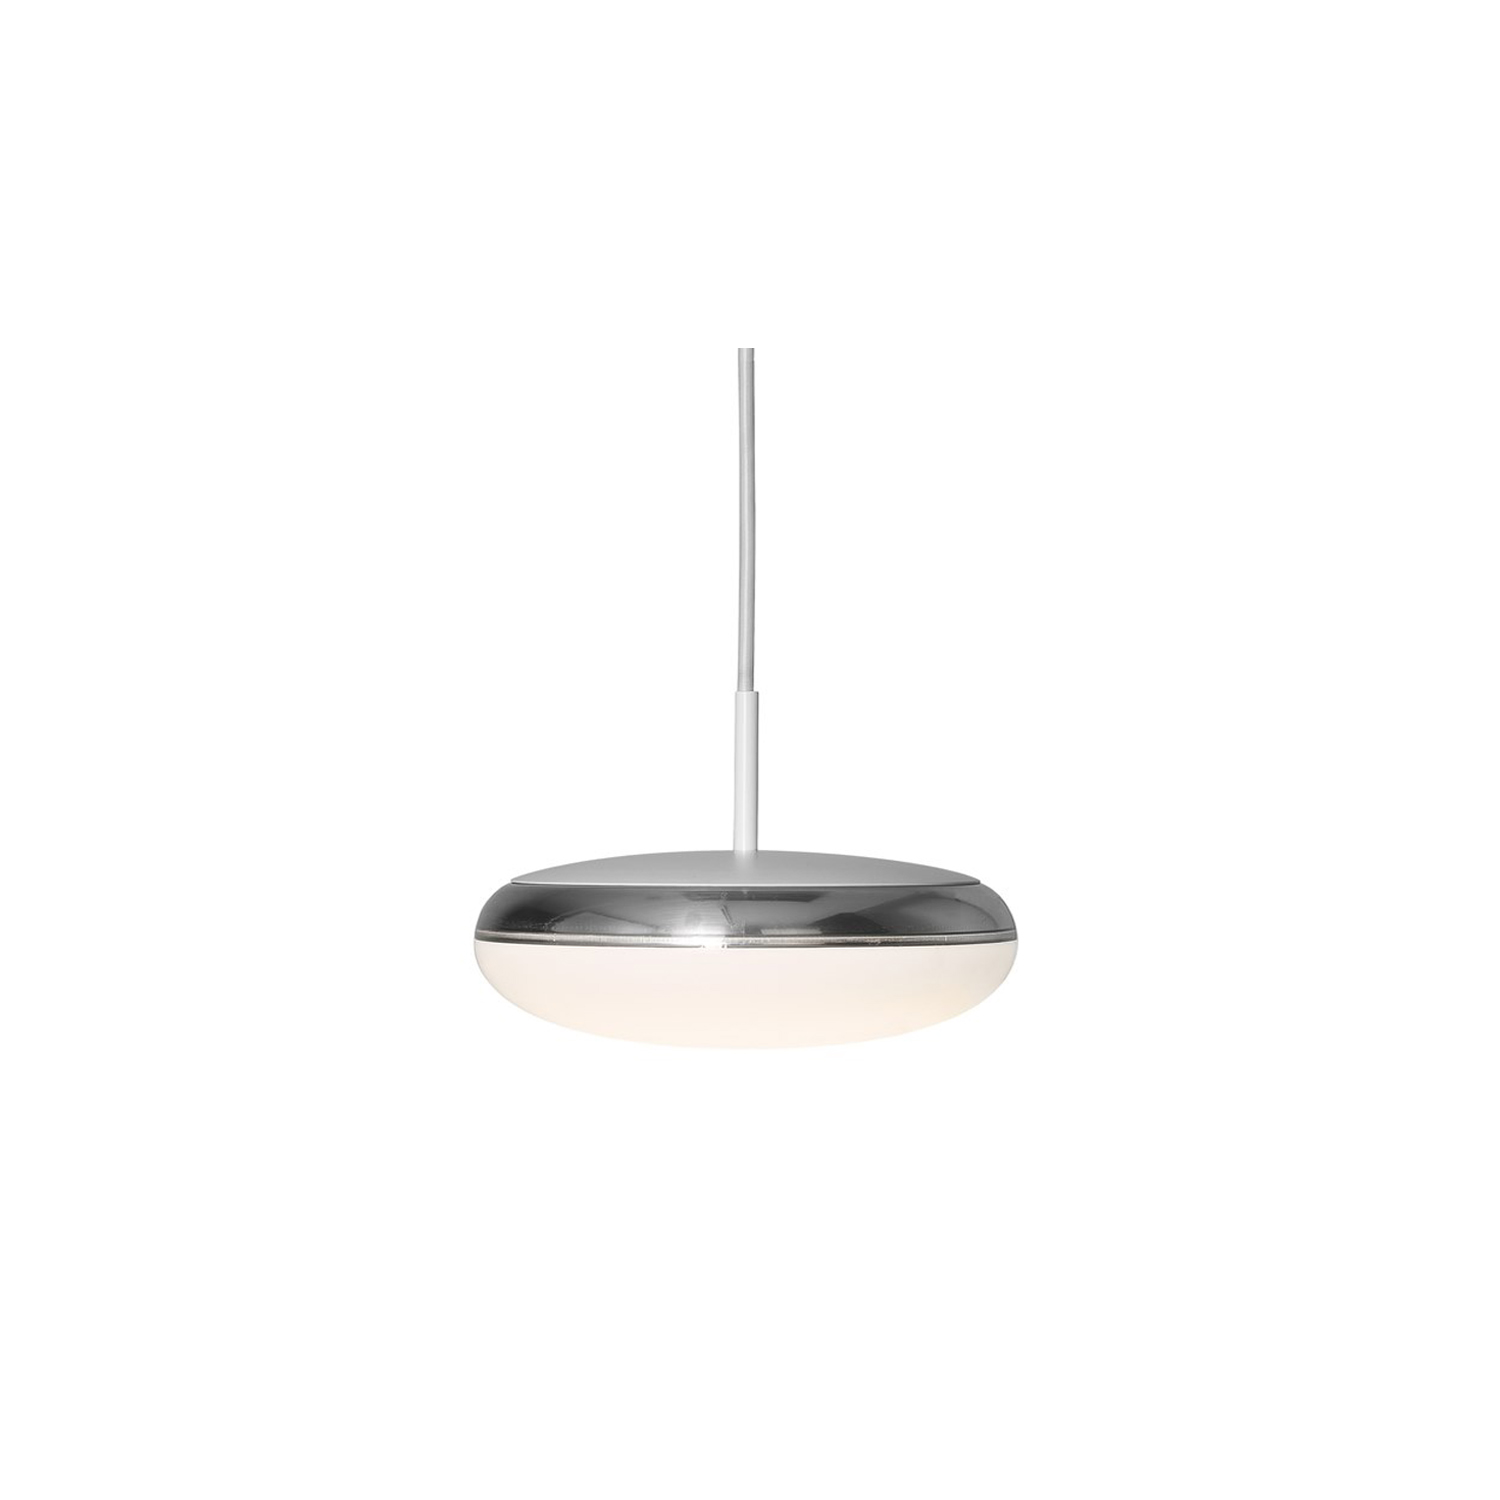 Silverback Pendant Light - The fixture emits diffused light. The curved opal diffuser provides soft, pleasant, primarily downward directed room lighting. The metallised semitransparent rear side of the diffuser produces a halo effect and reflects light from the surroundings. The rounded white top completes the curve from the diffuser. The luminaire is suspended simple and elegant from its cord. A white pendant tube in the top of the housing ensures stability and balance in the luminaire. | Matter of Stuff